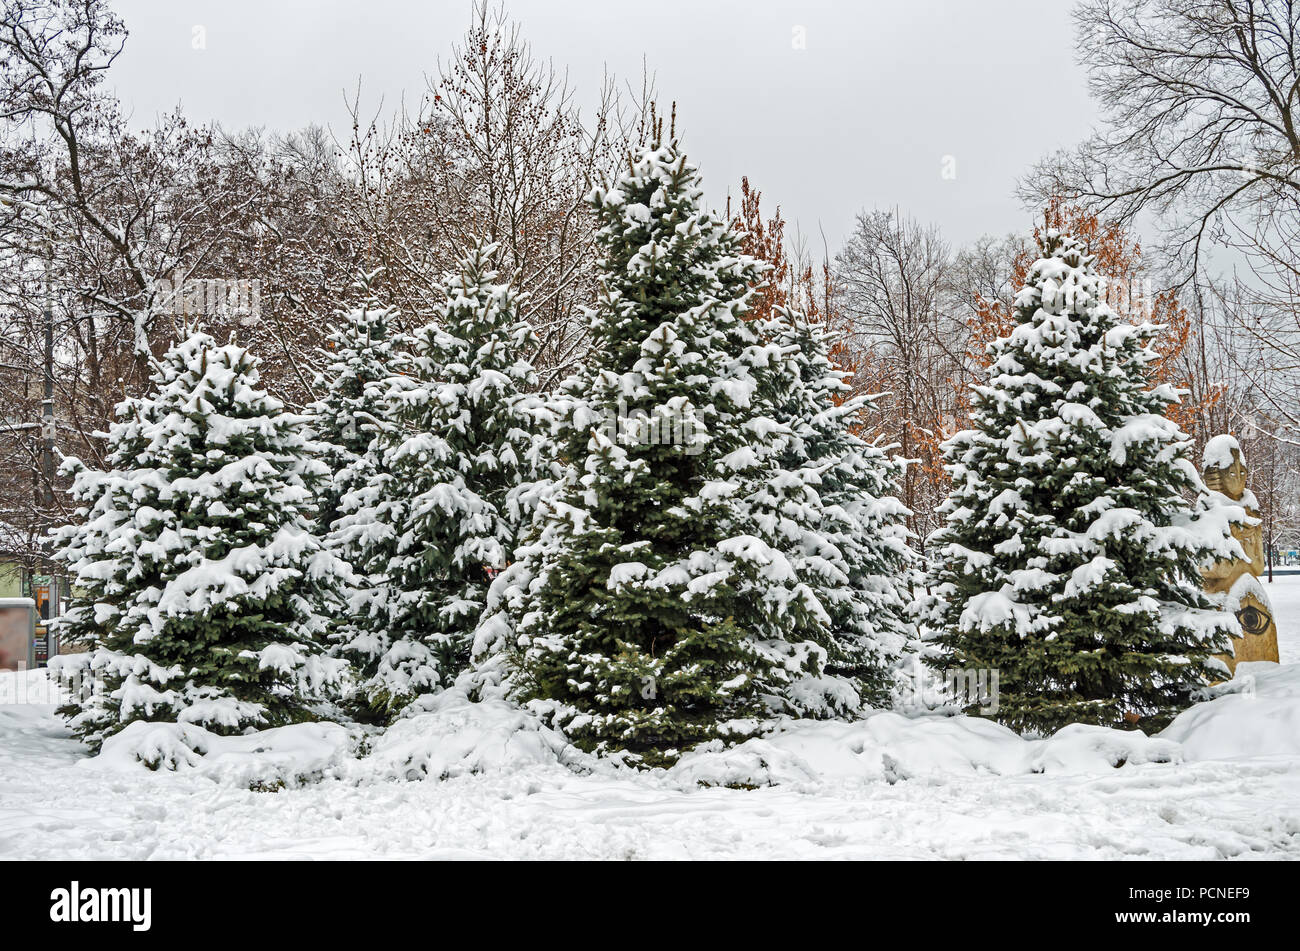 Frosty January snow covered grove of young spruces in the city park - Stock Image